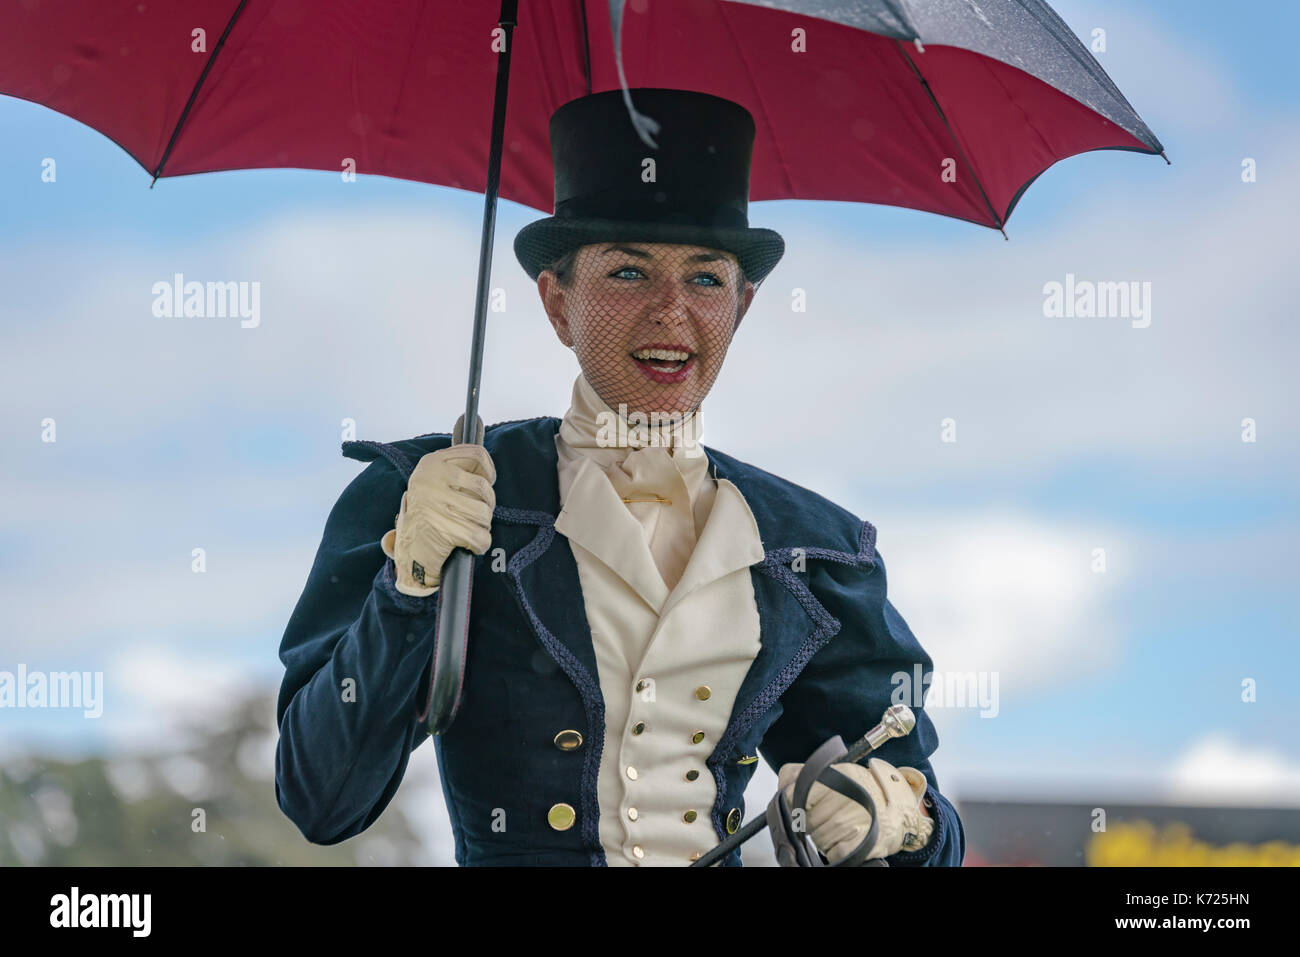 Blenheim Palace, Woodstock, UK. 14th Sep, 2017. Day 2 of Blenheim Palace Horse trials, Side sadle display by a bit on the side. Credit: Scott Carruthers/Alamy Live News - Stock Image